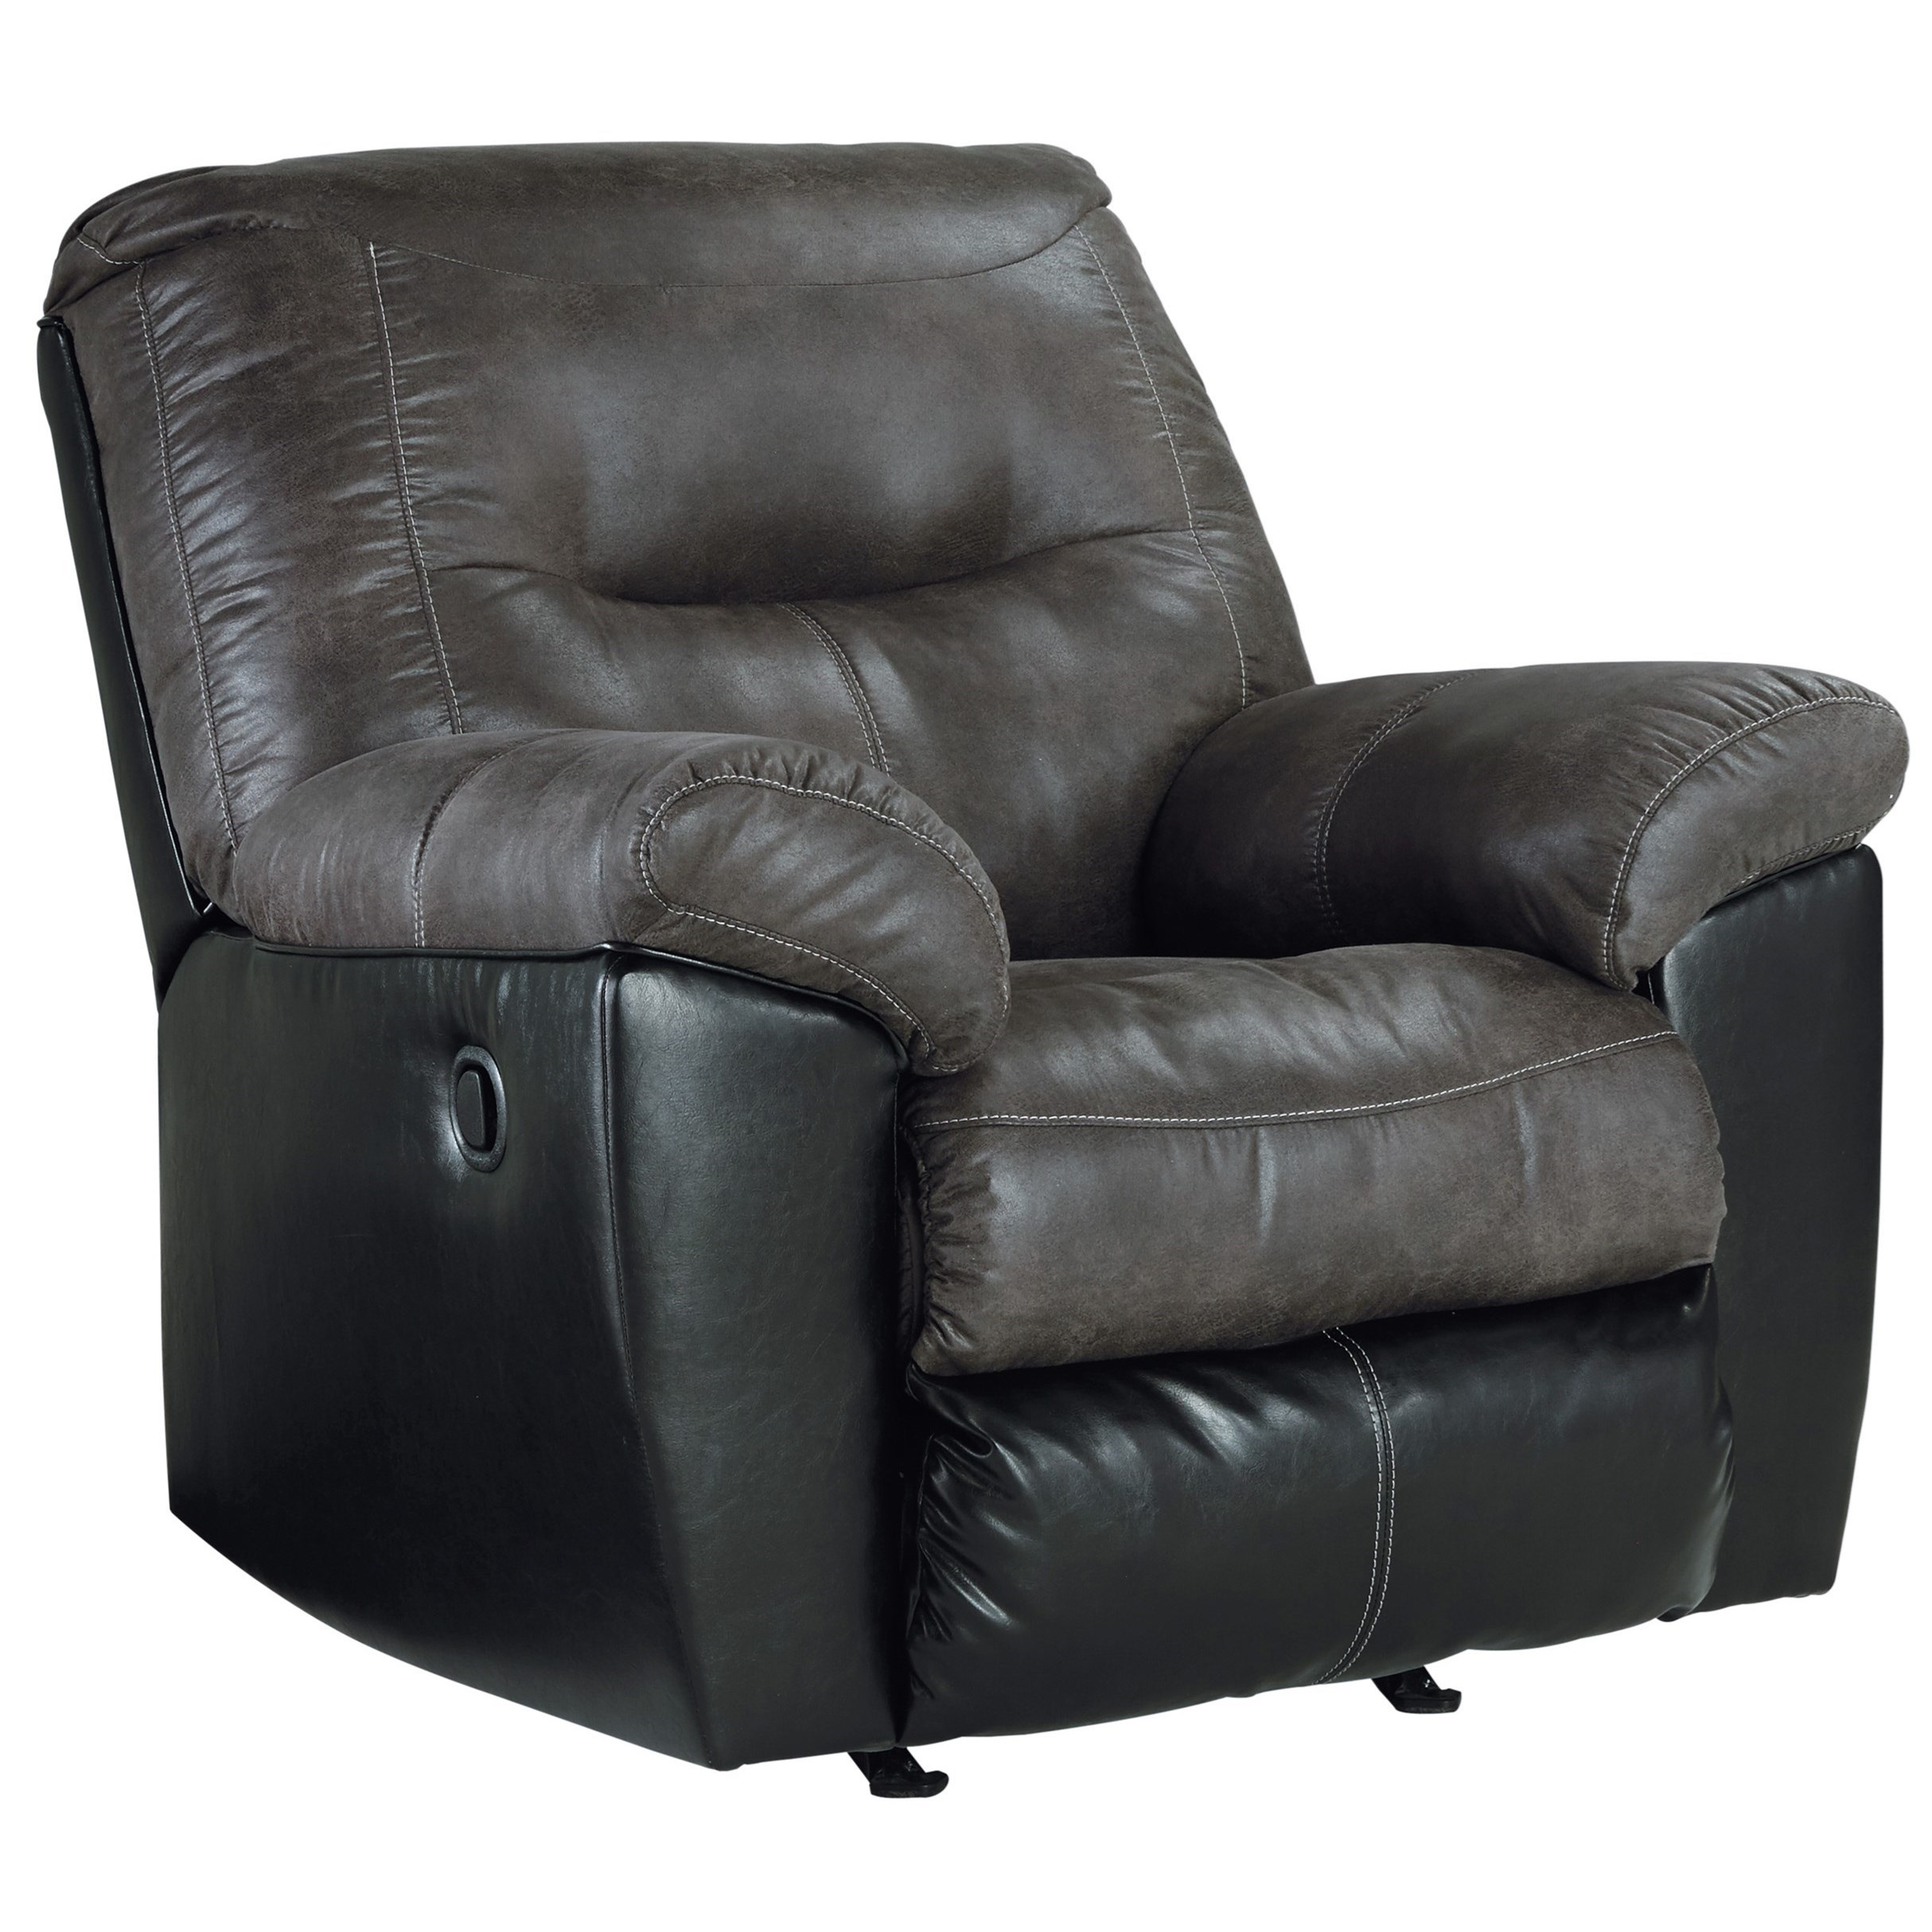 Signature Design by Ashley Leonberg Rocker Recliner - Item Number: 3790225